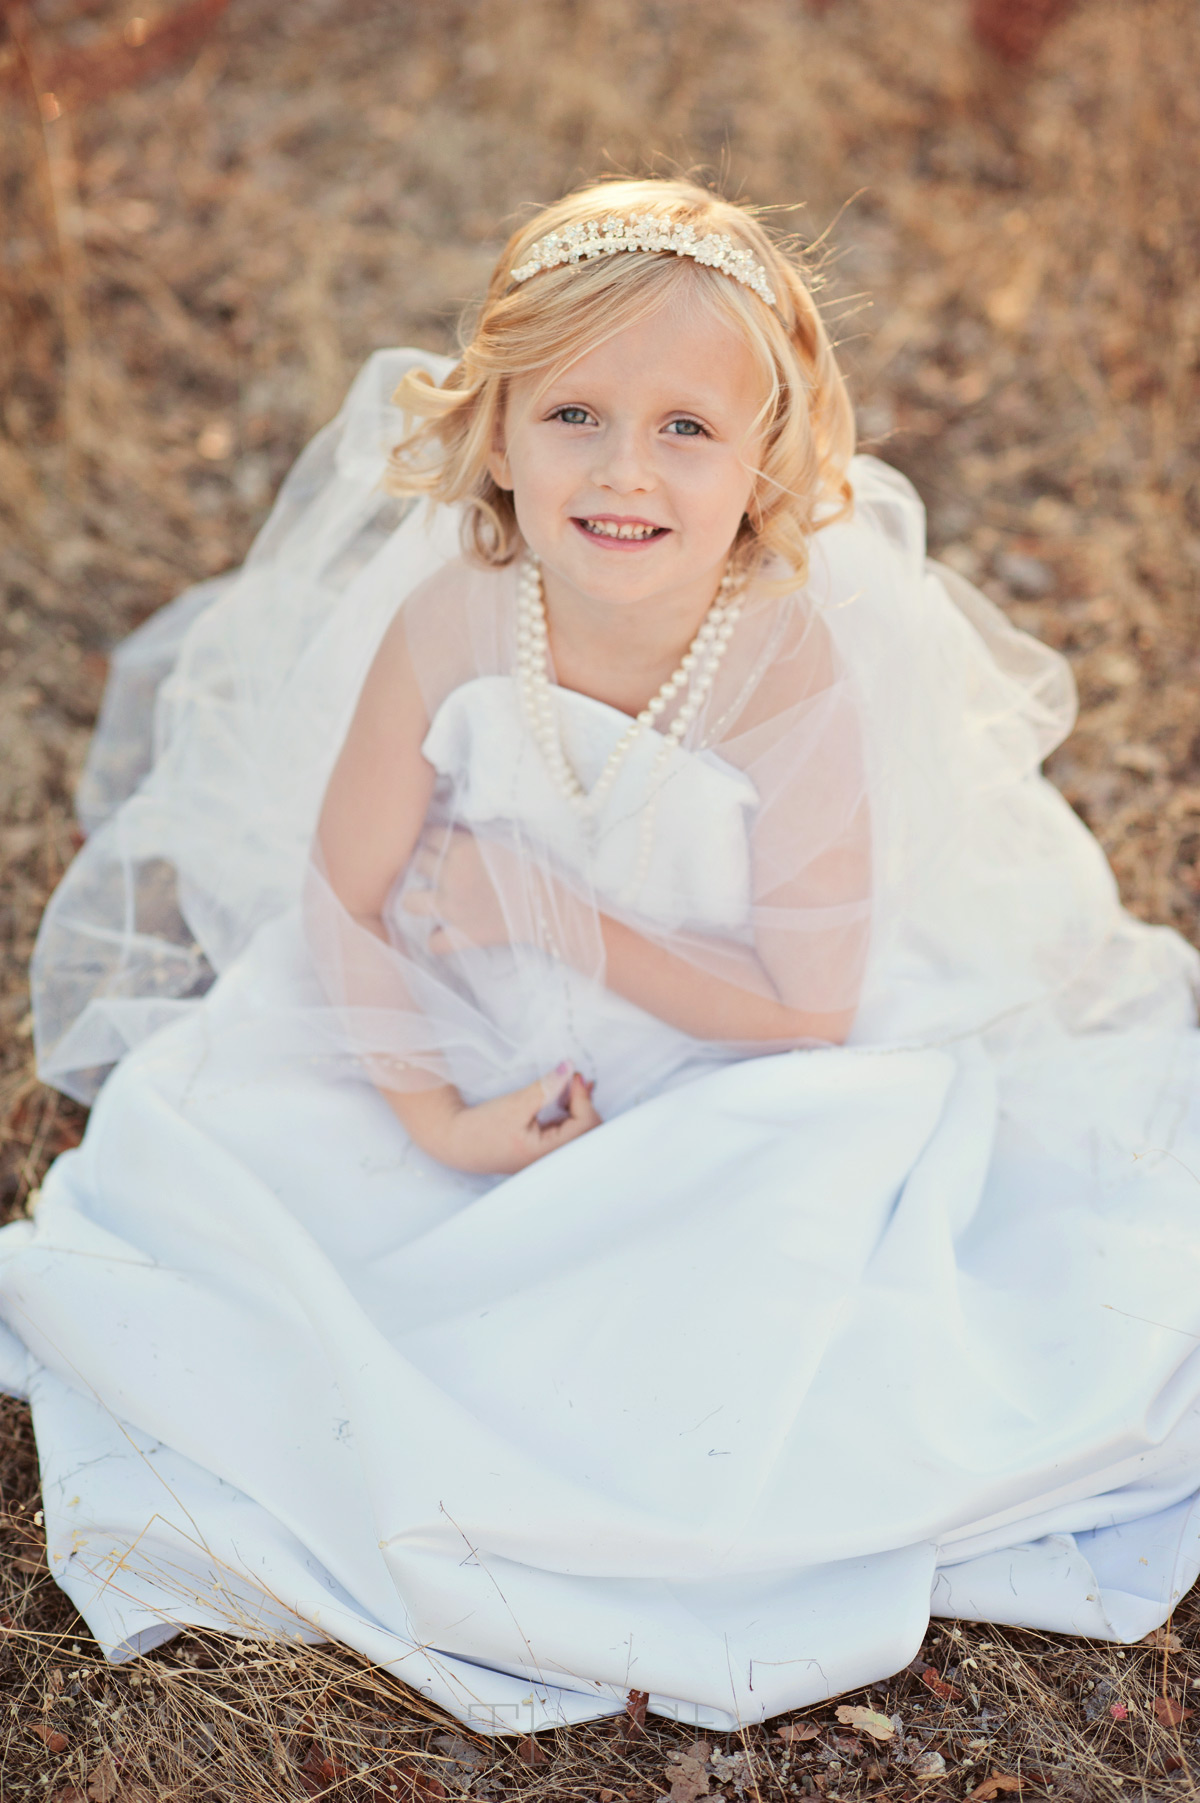 Photos by Essence photography - Ask Anna